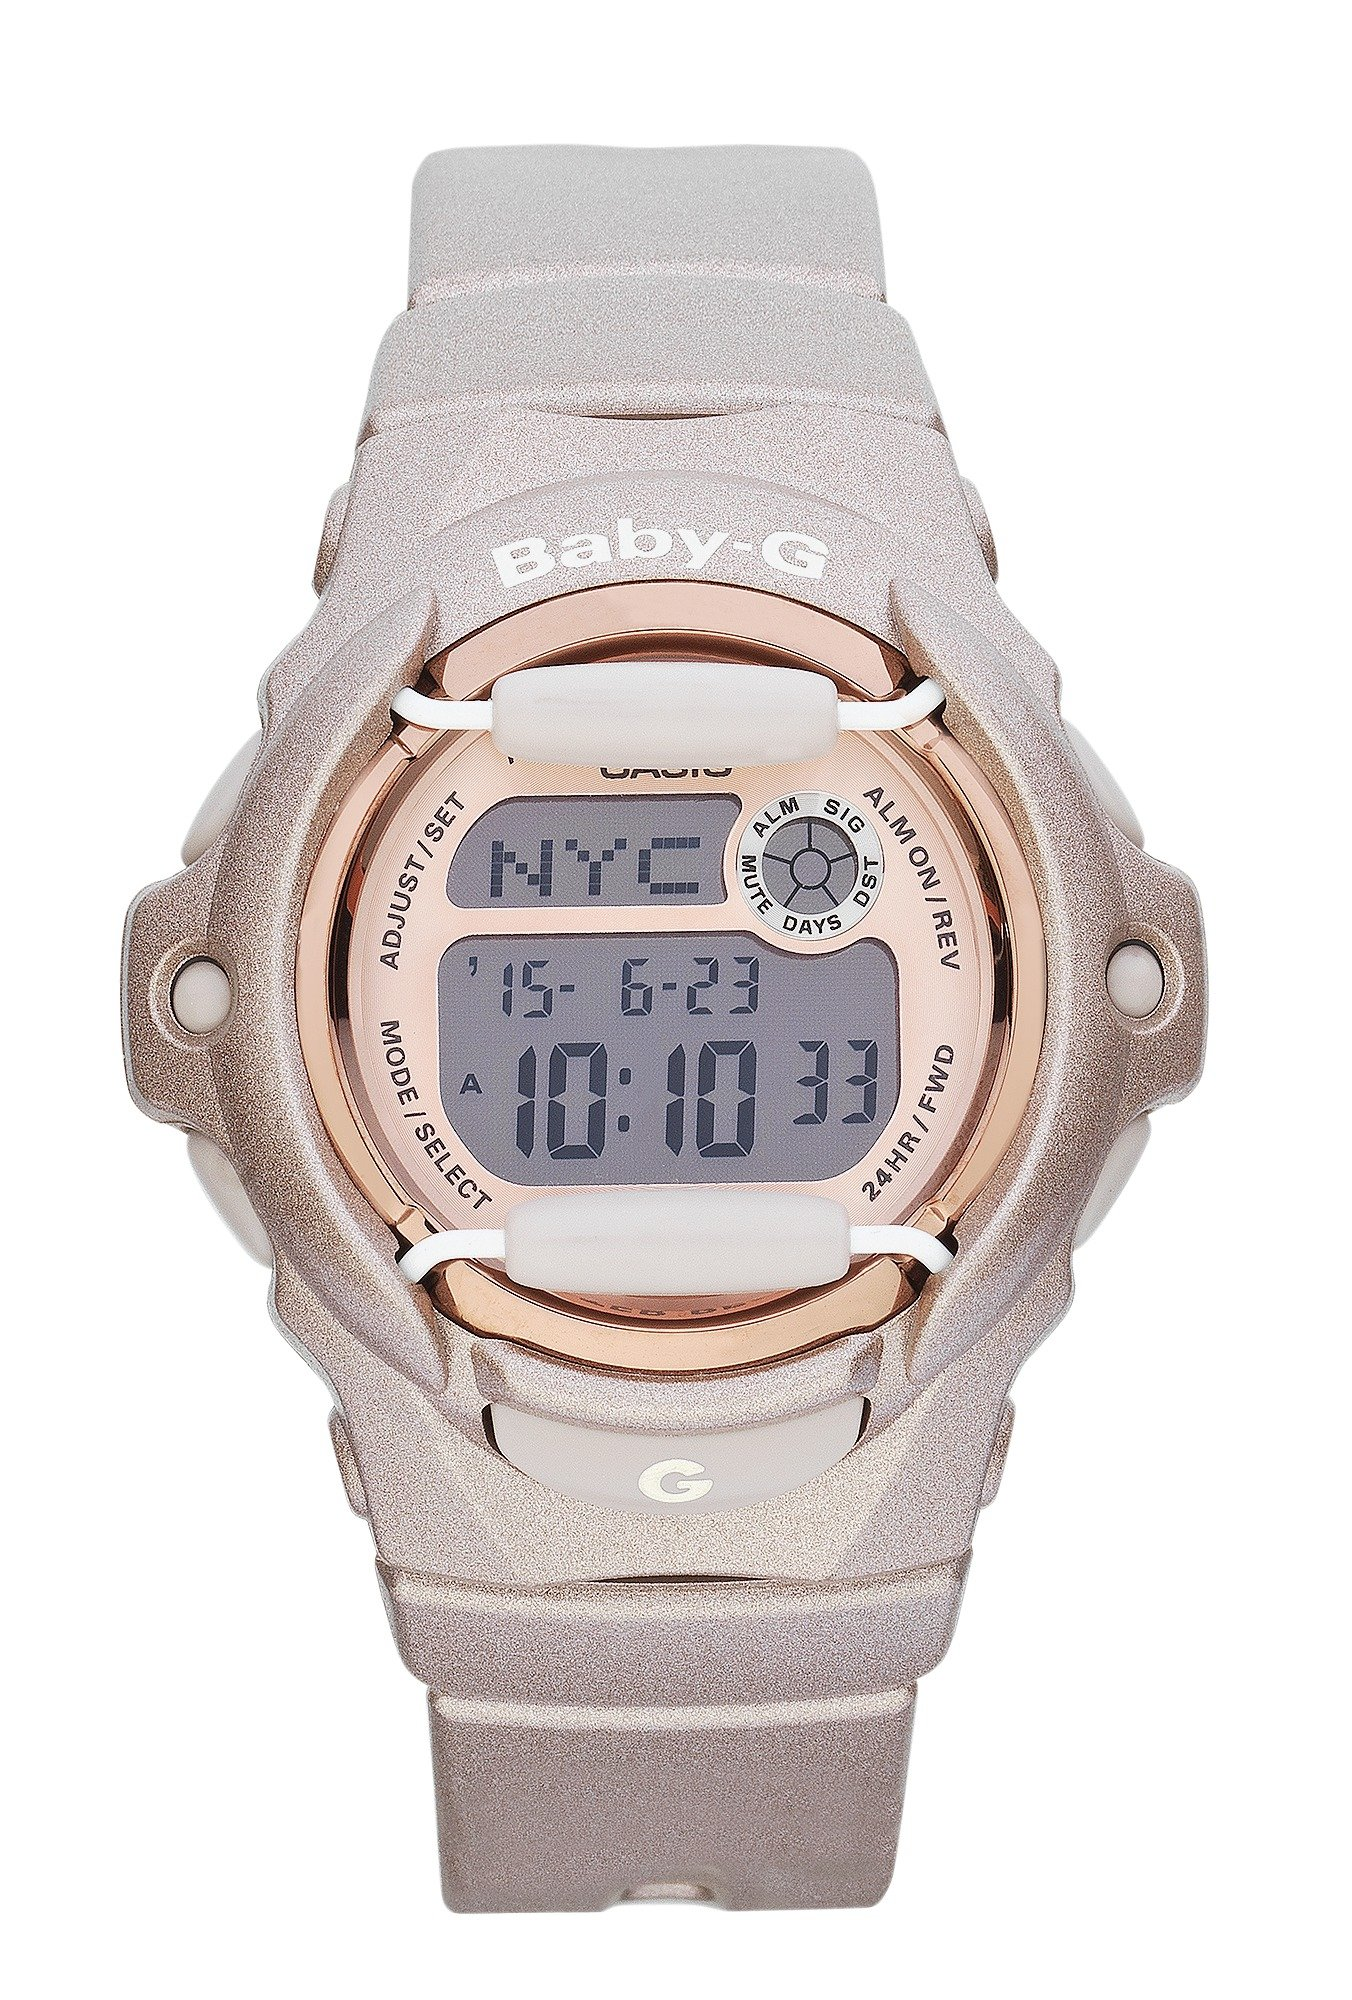 Casio - Baby-G 25 Page Telememo